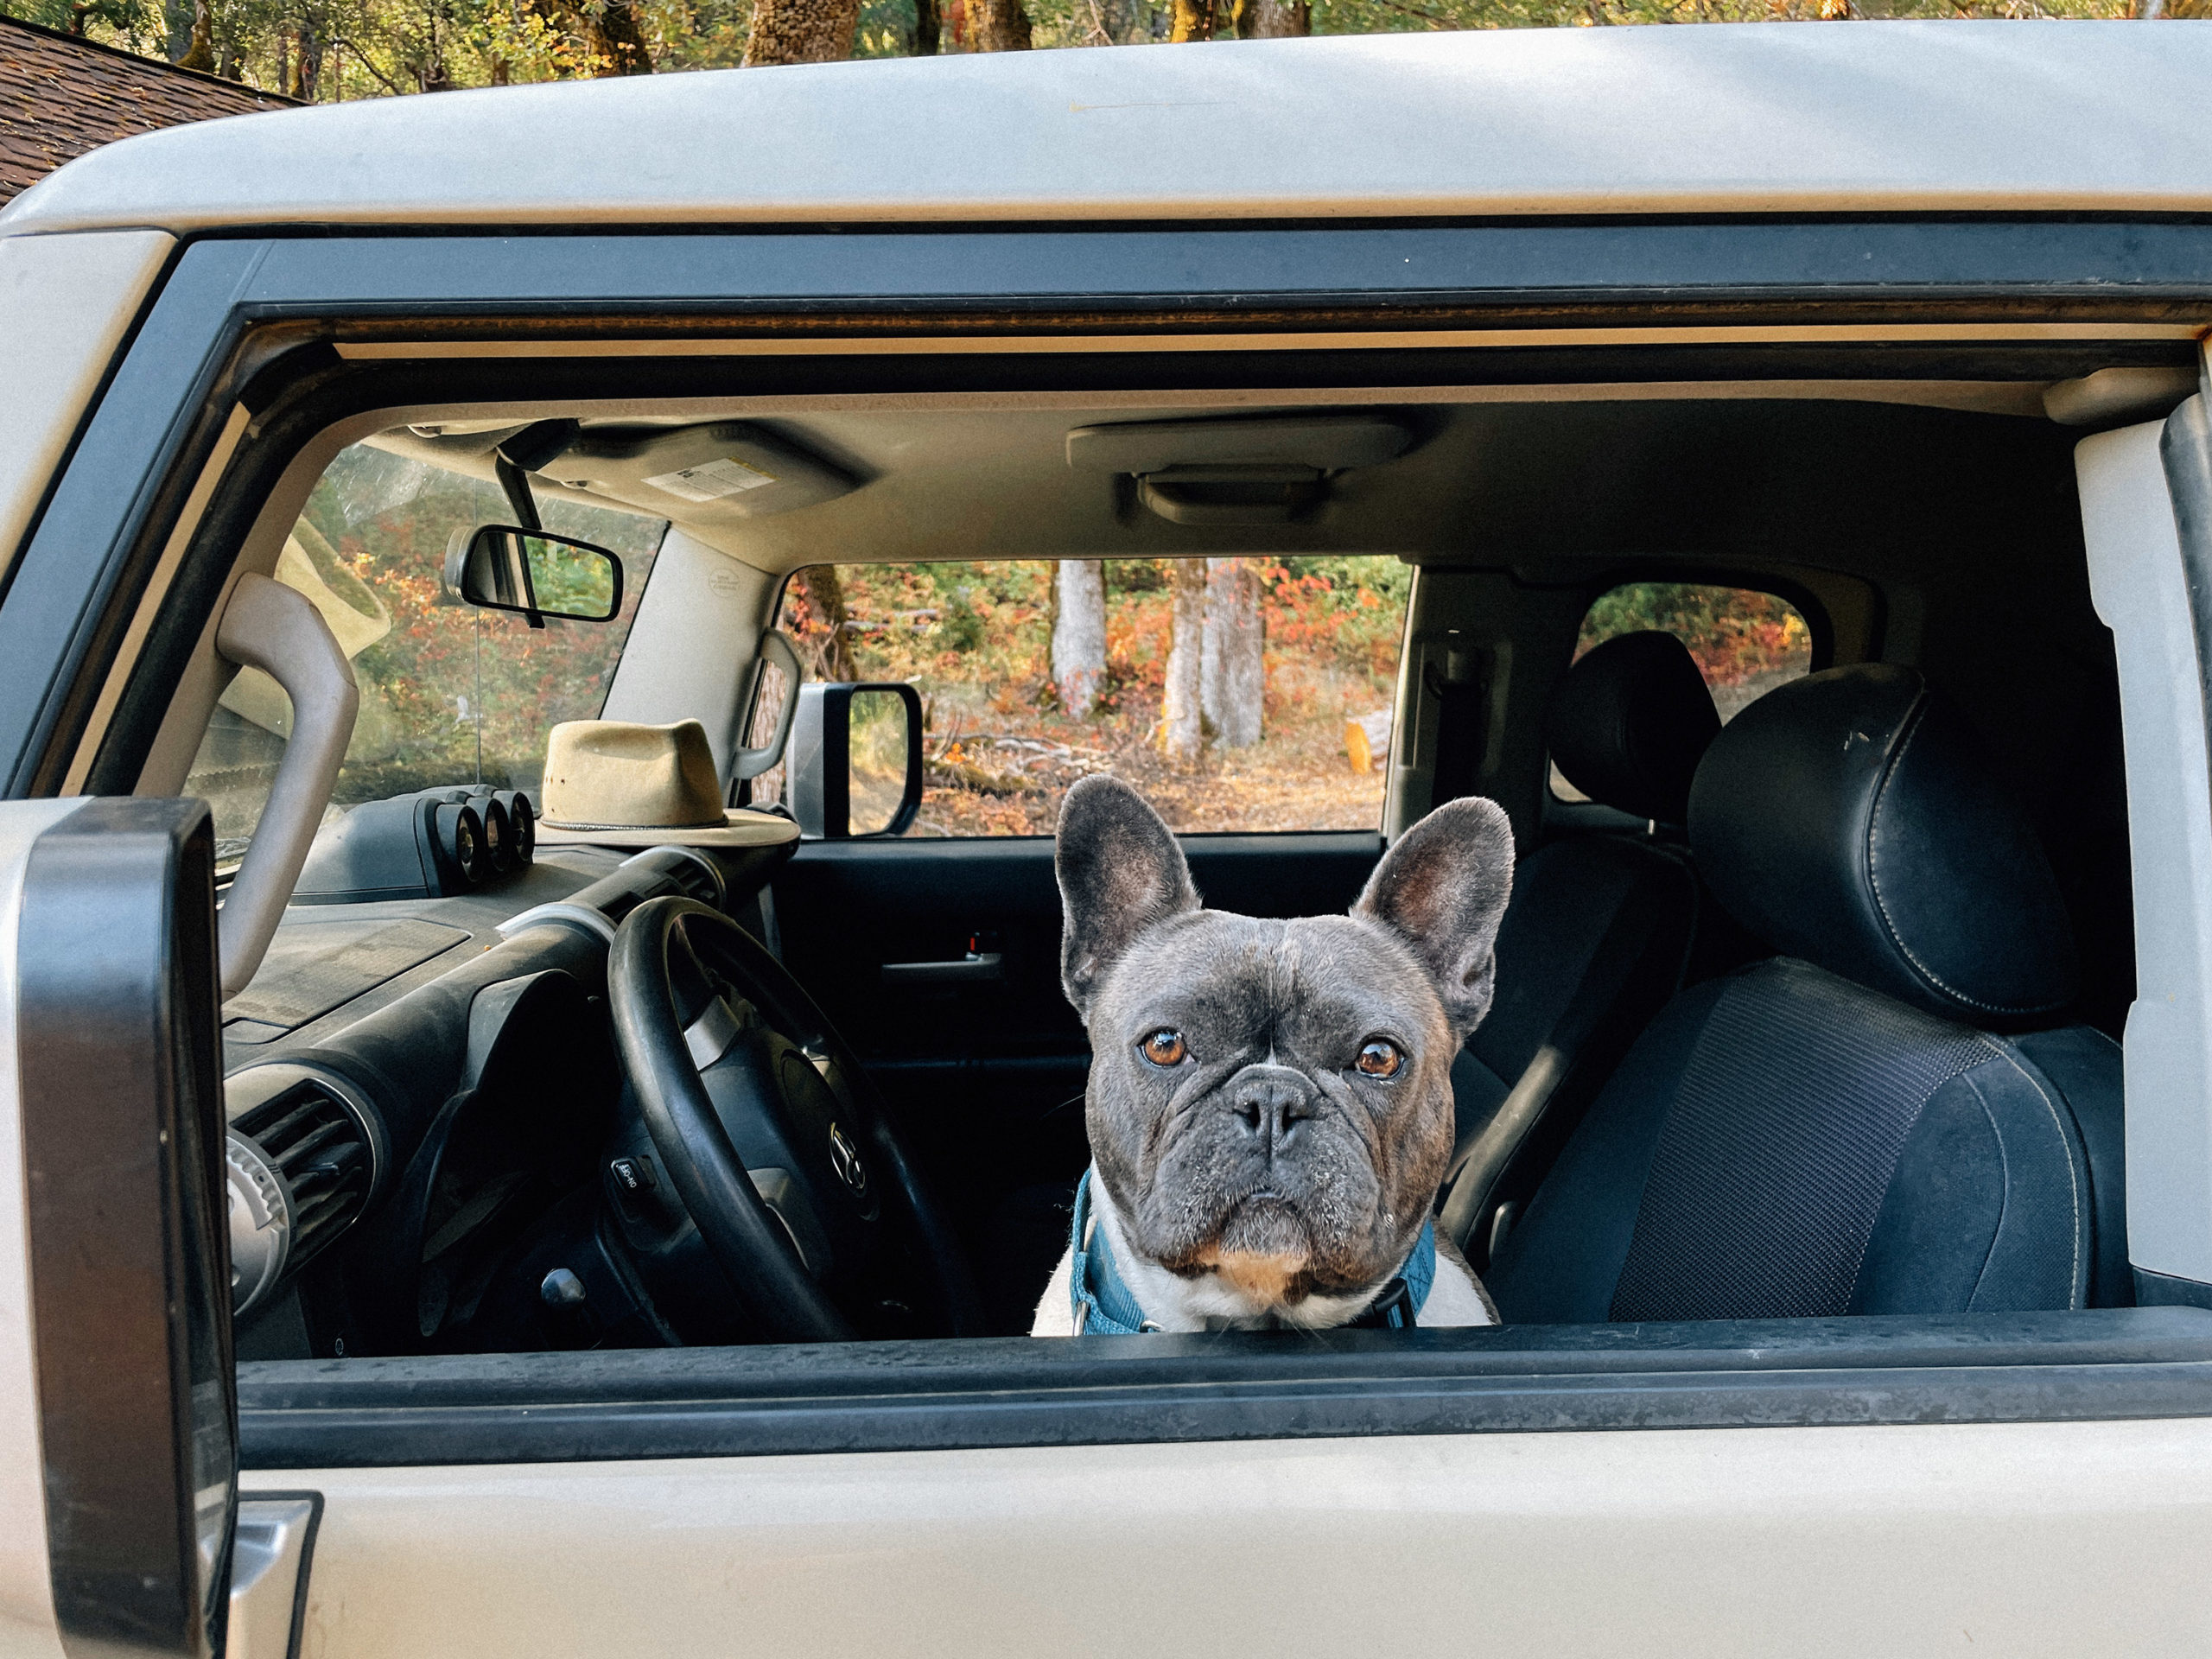 A french bulldog sits in the driver seat looking out the window